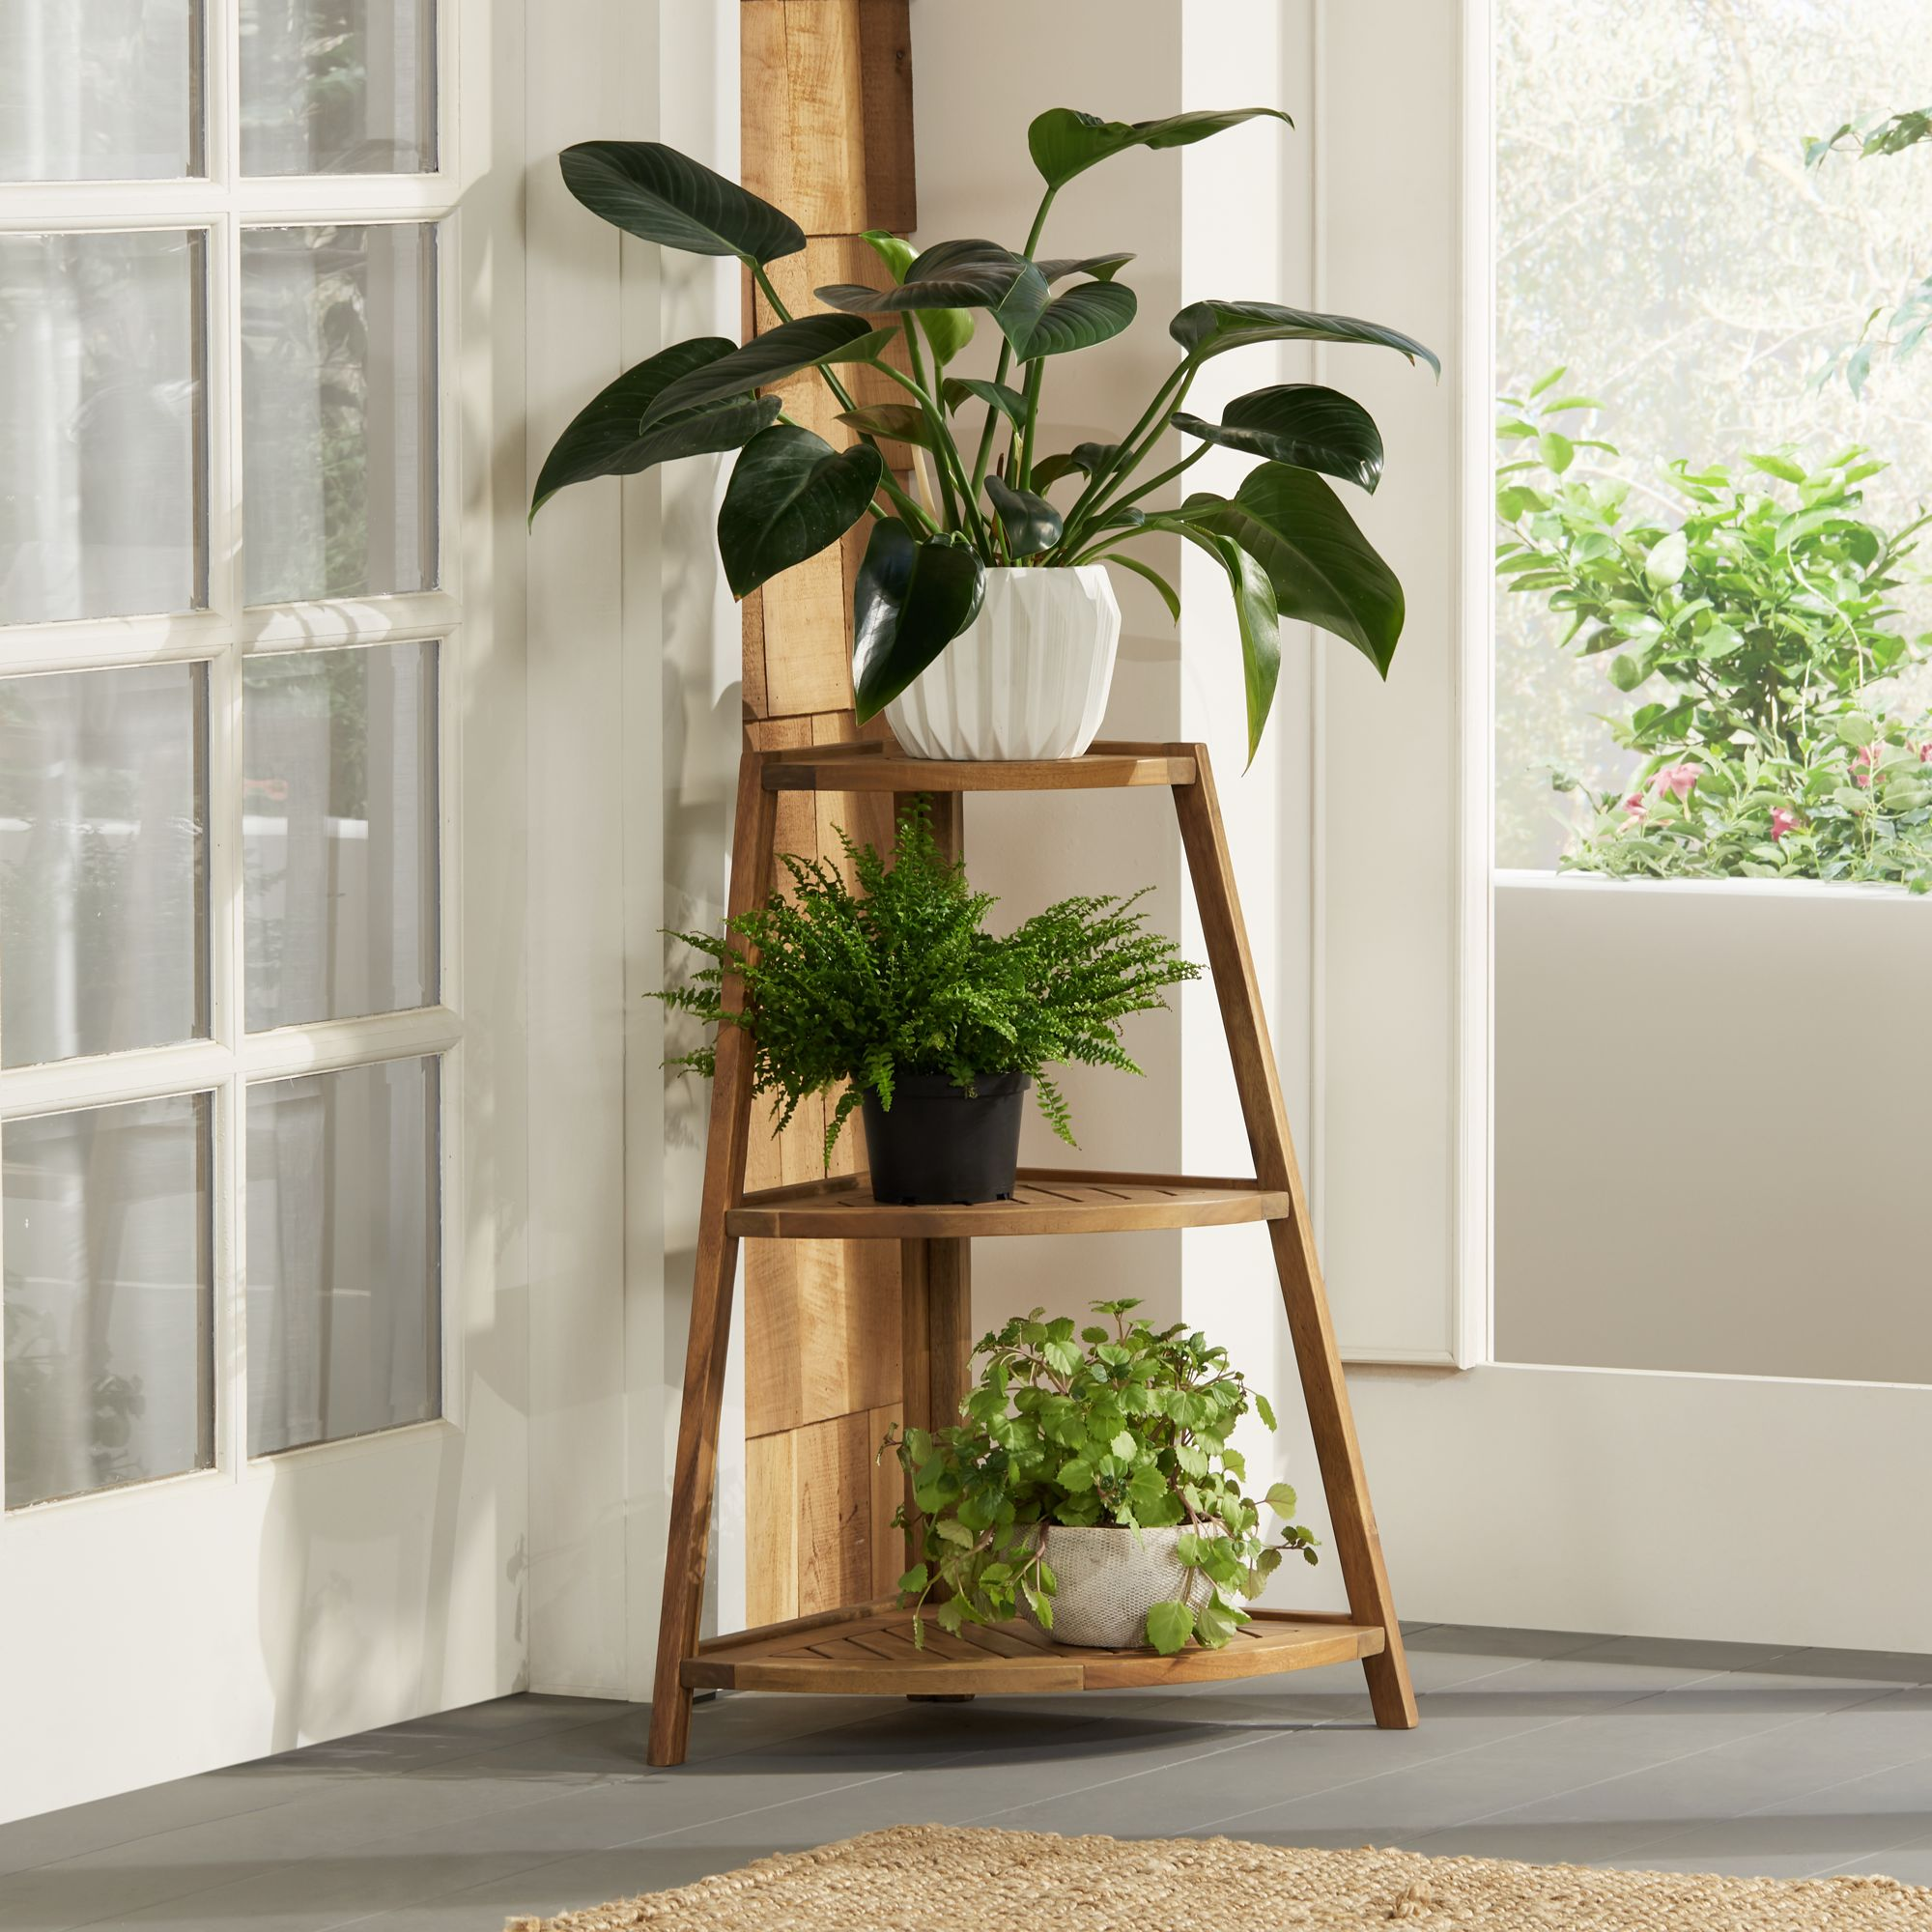 Teal Island Designs Le Petit Jardin Wooden 3-Shelf Indoor-Outdoor Plant  Stand